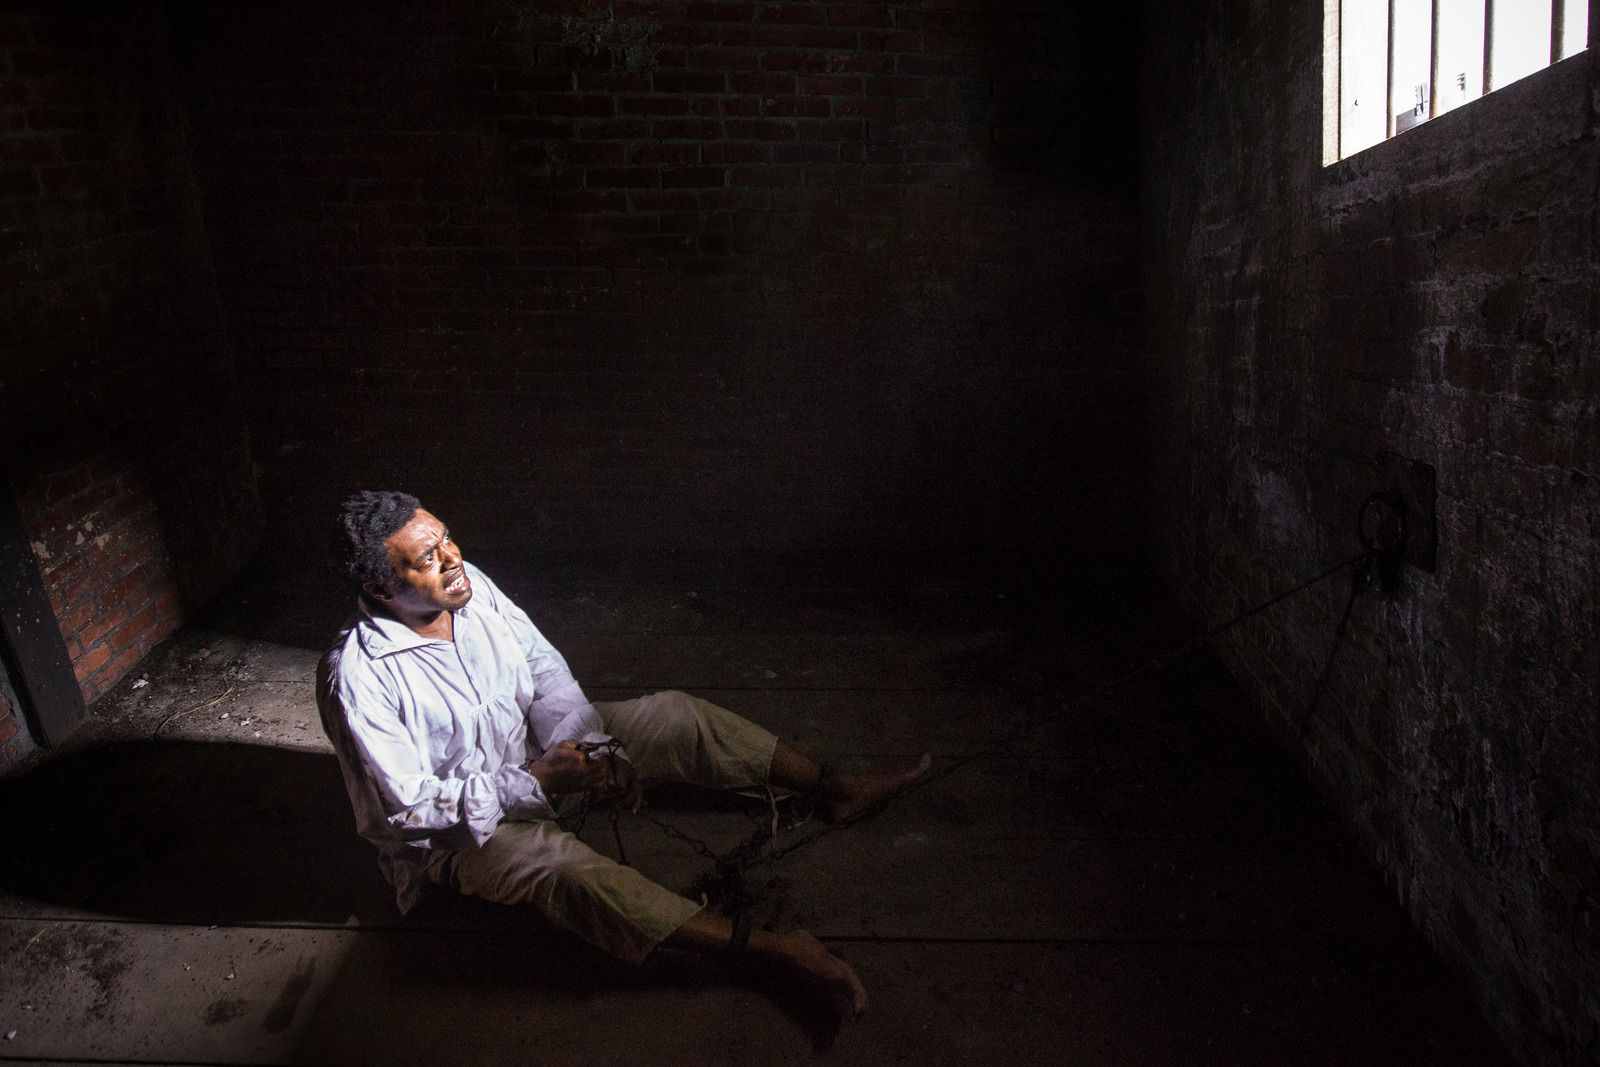 Anatomy of a Scene: 12 Years a Slave